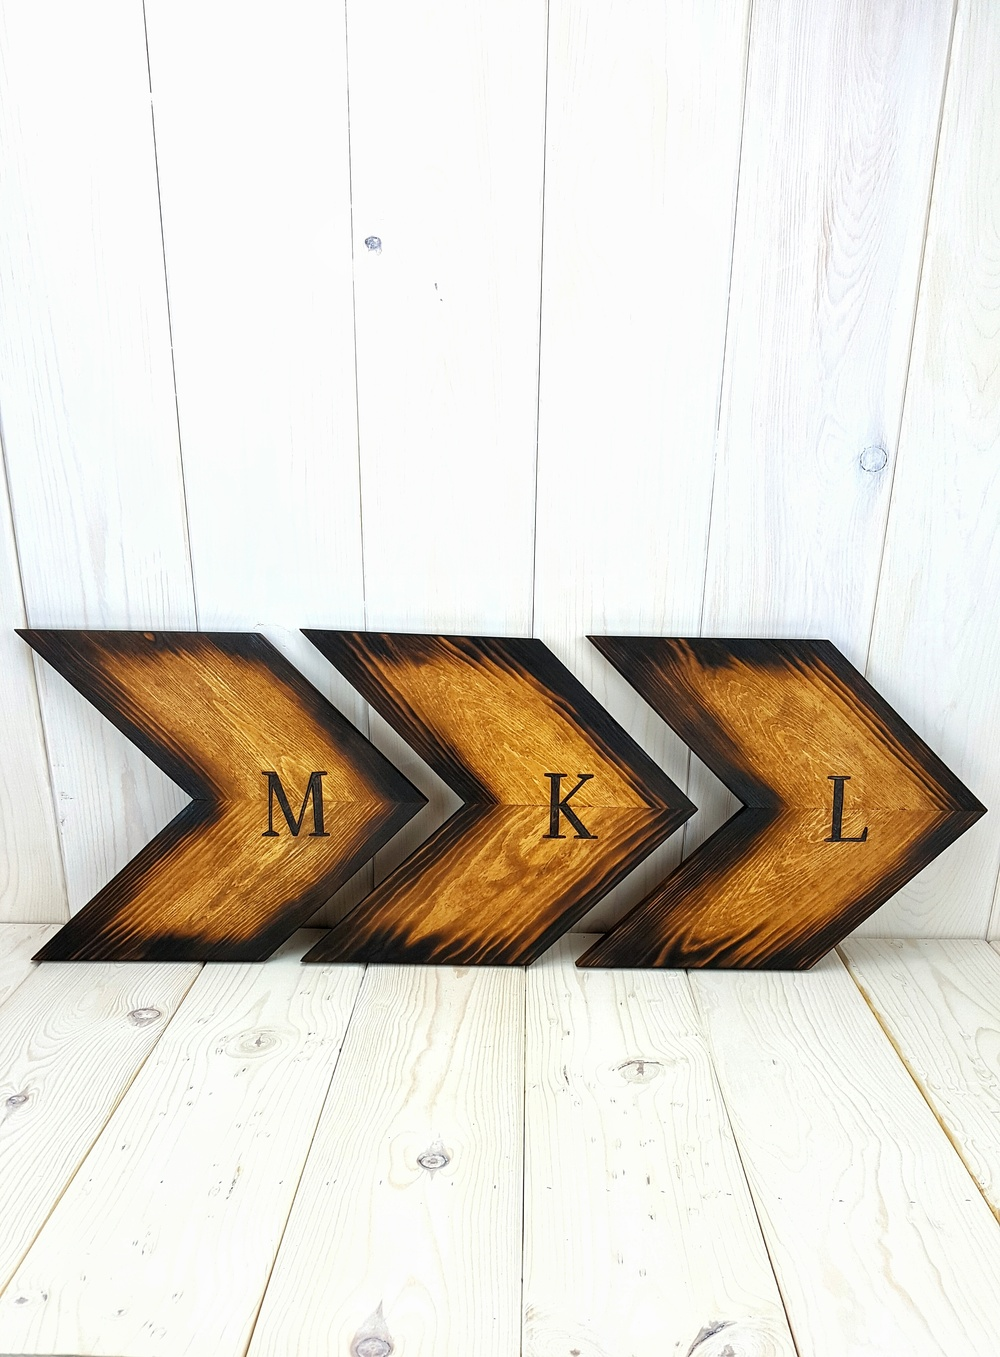 Personalized Woodburned Wheat Arrows